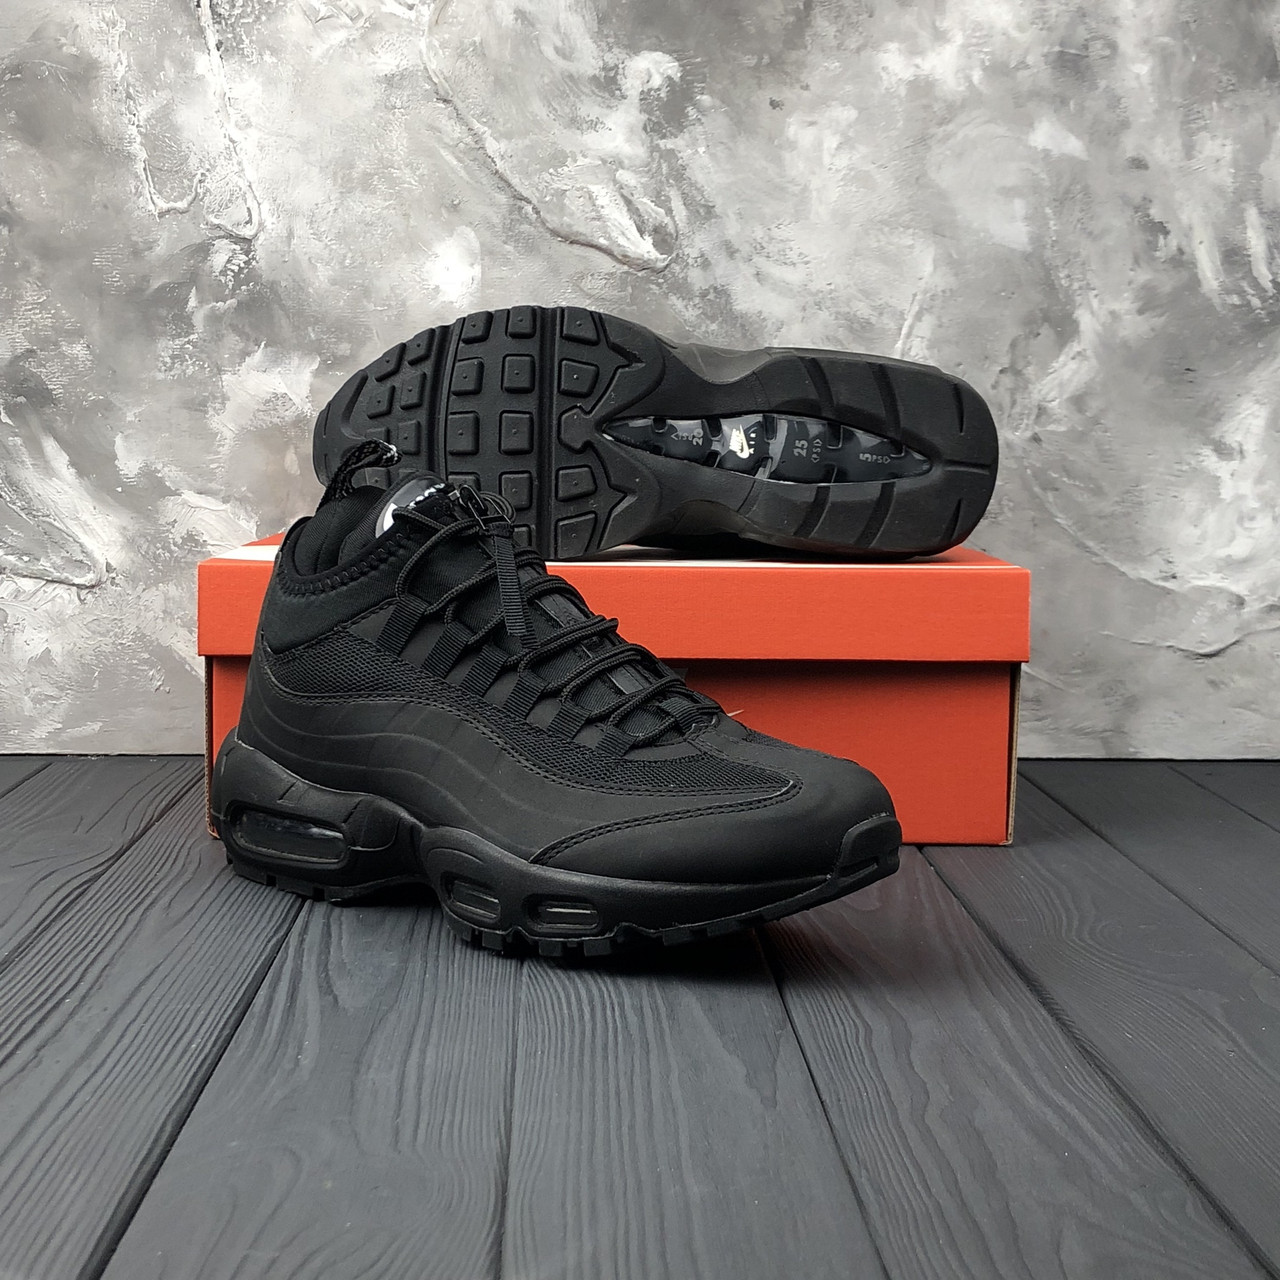 Мужские Кроссовки Nike Air Max 95 Sneakerboot Dark Brown Black